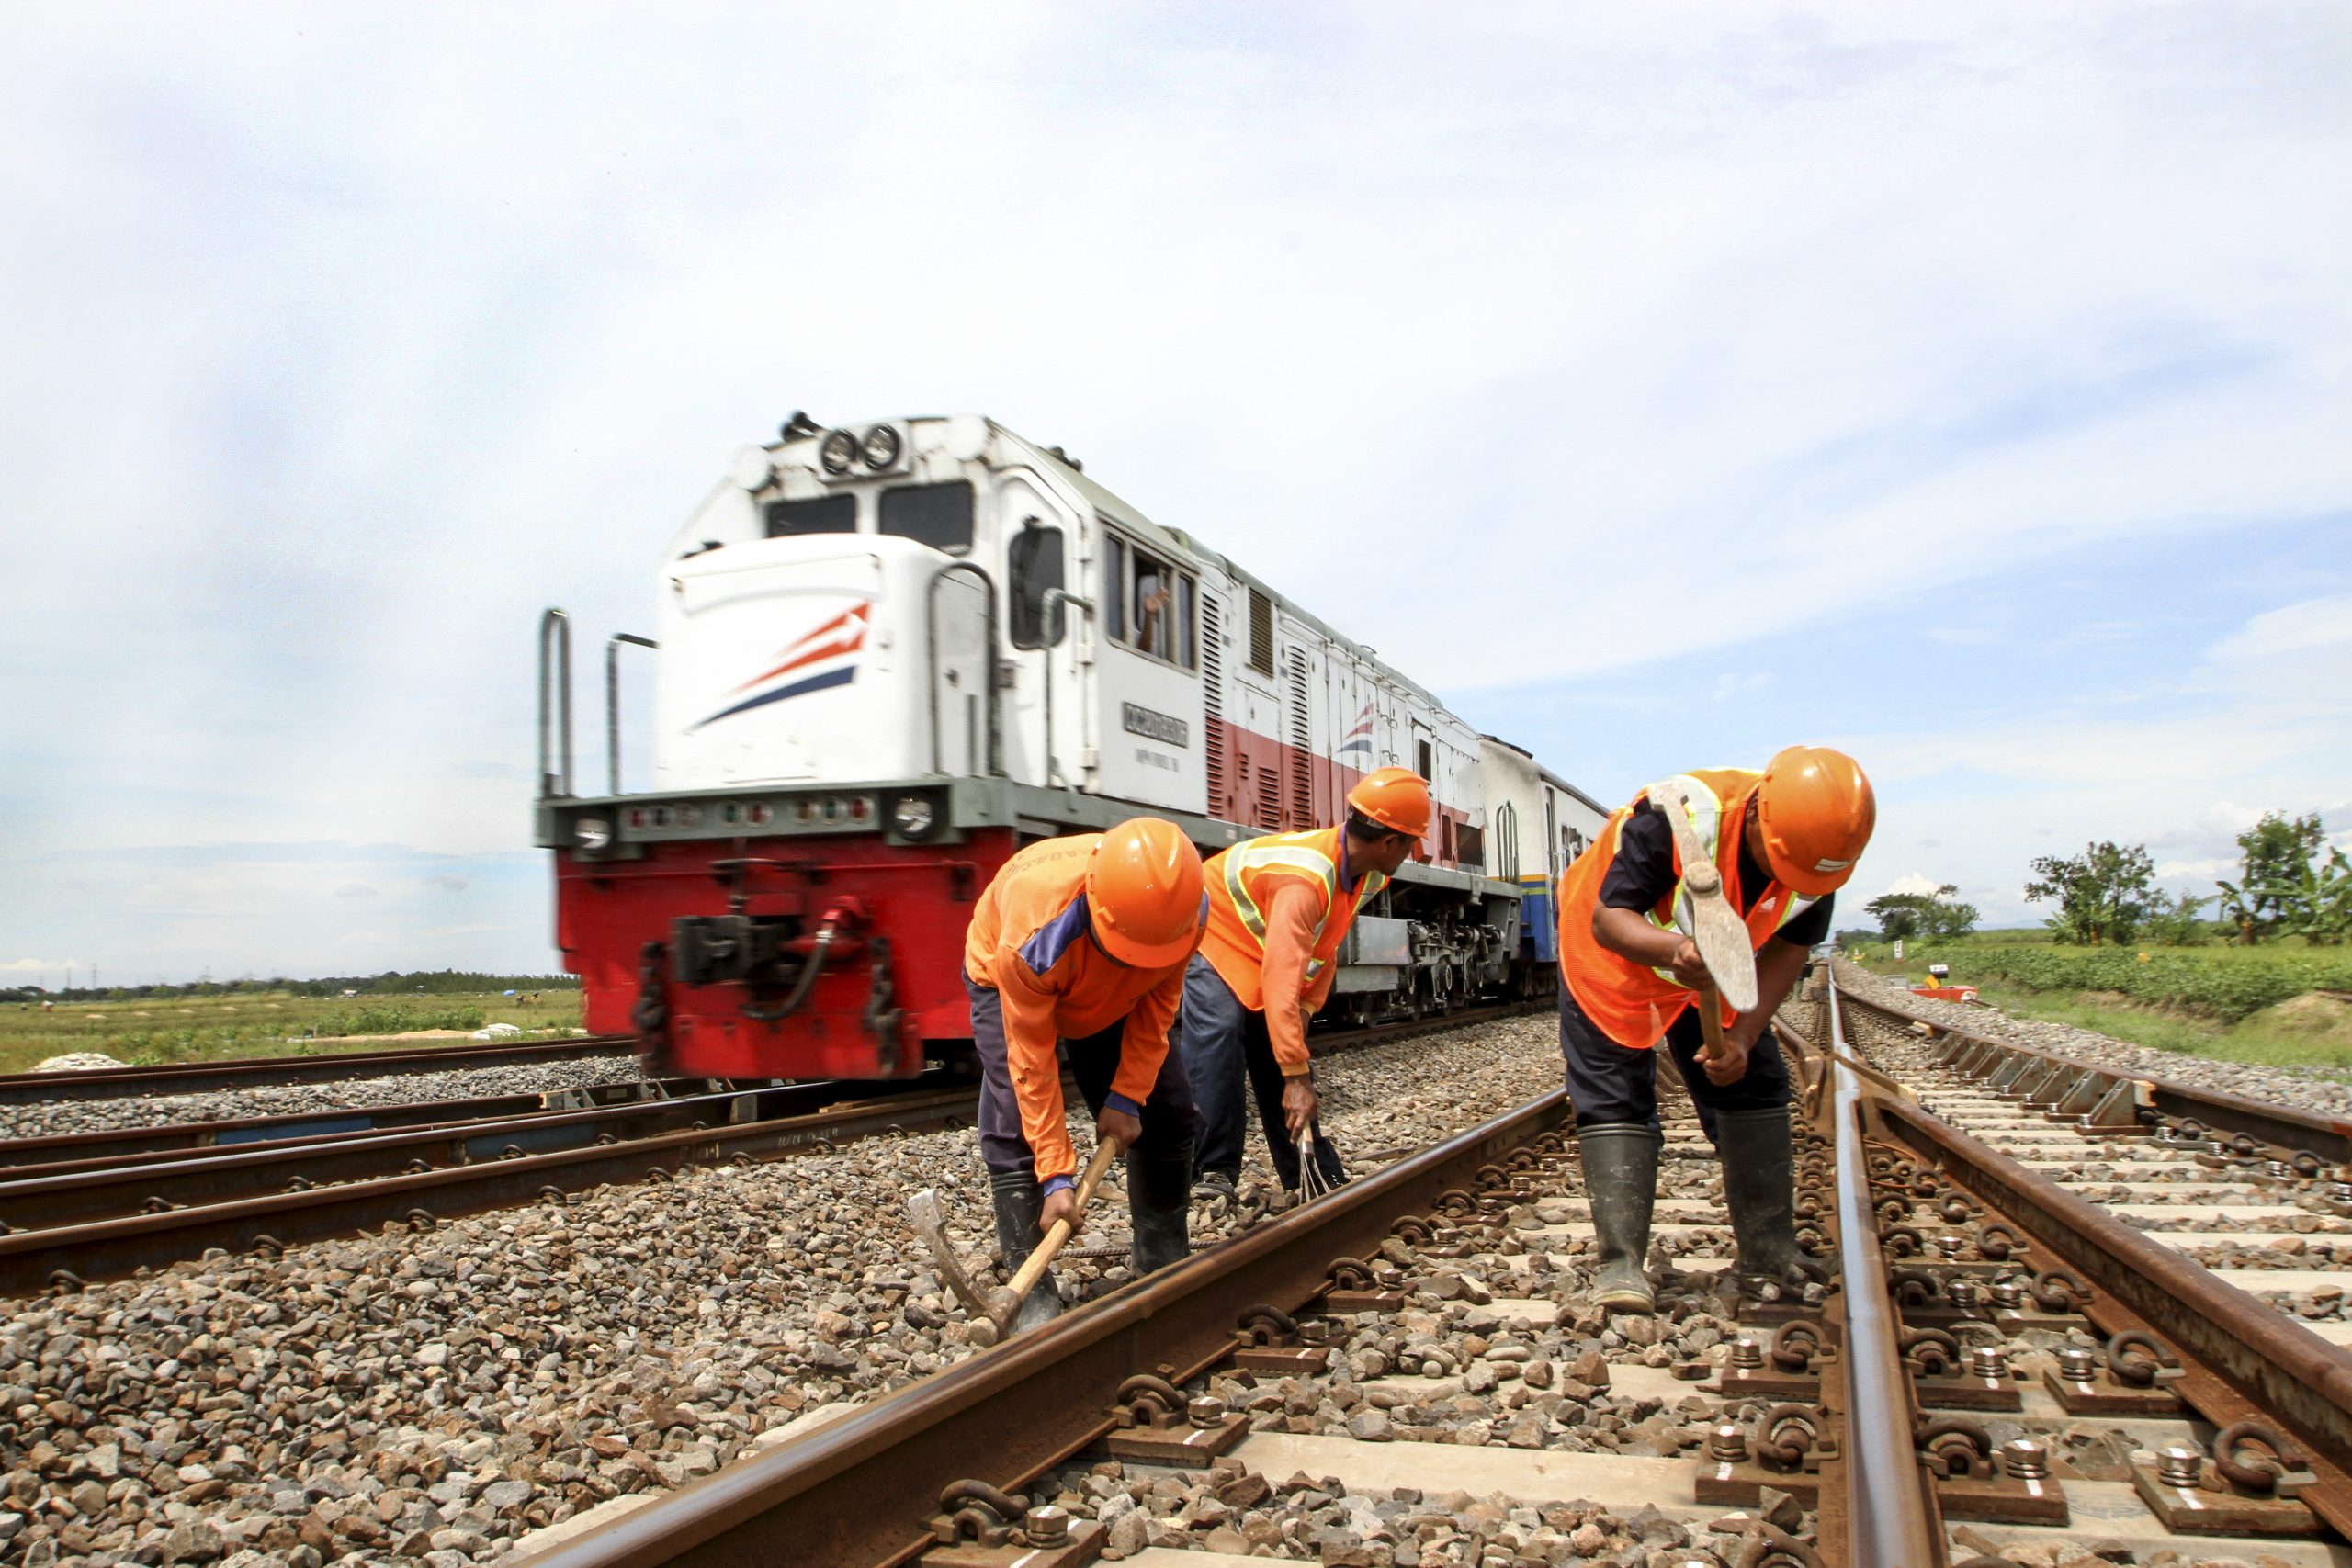 Maintenance work on Indonesia's railway tracks.